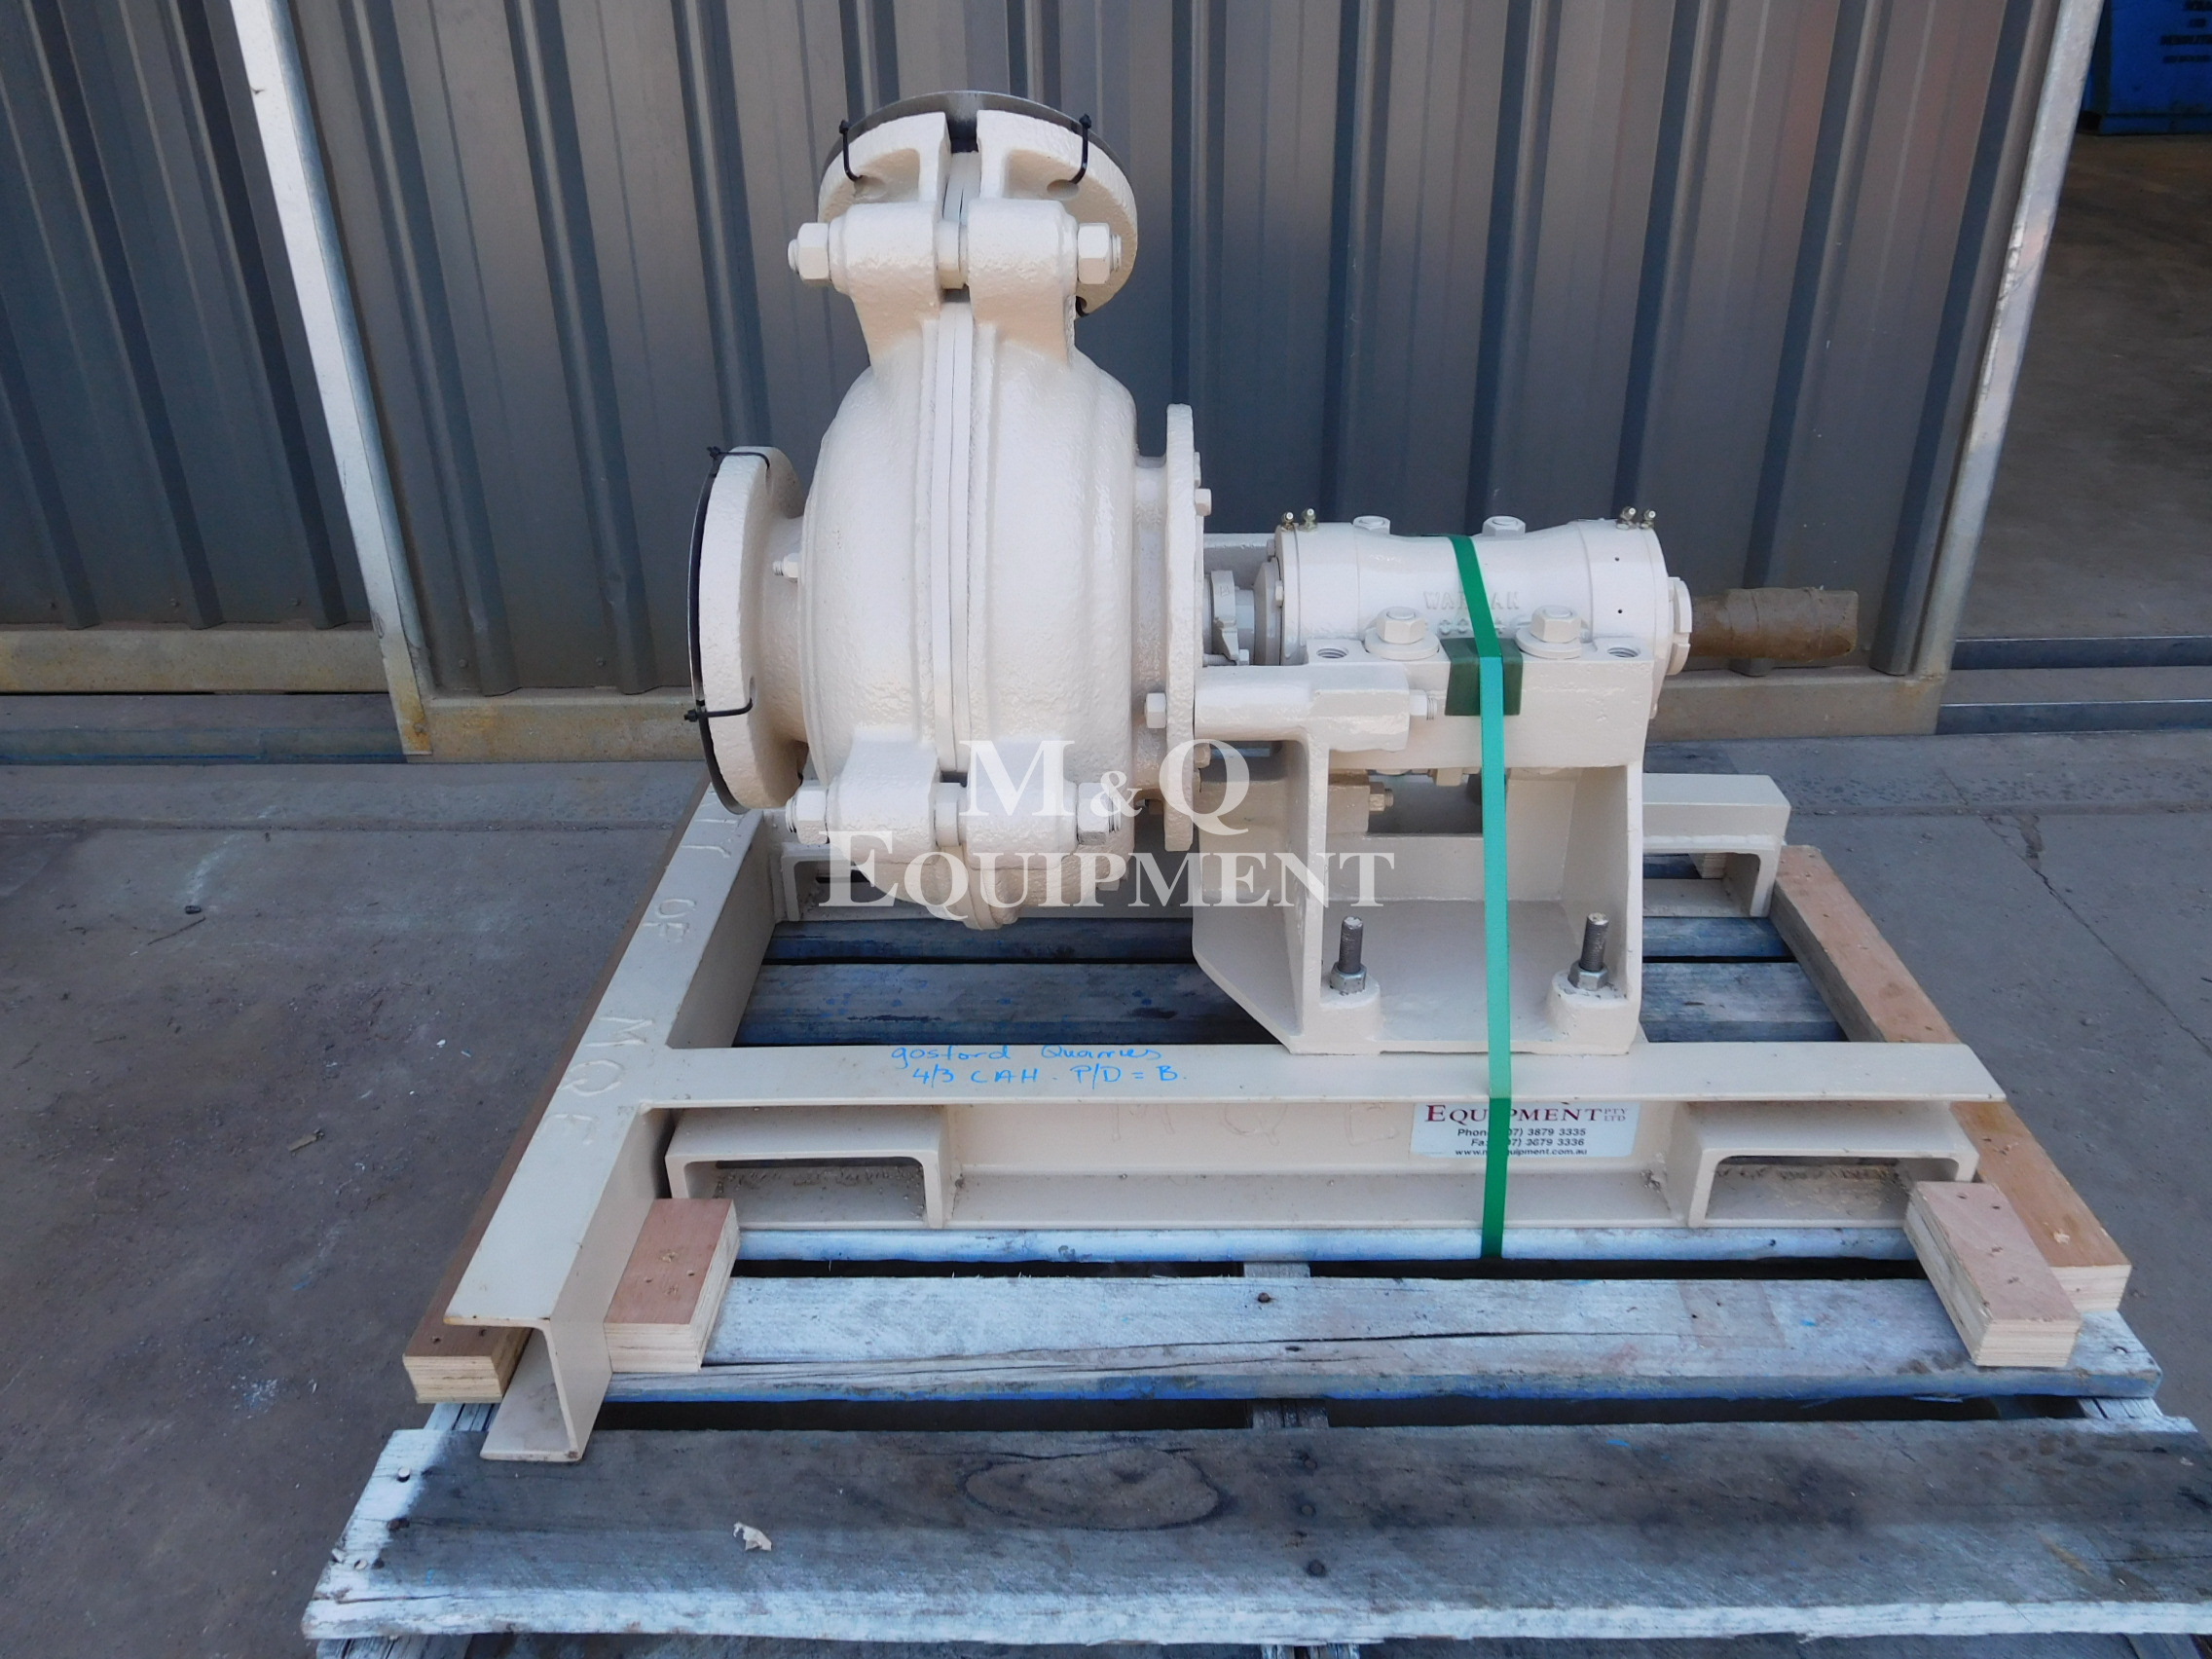 Sold Item 508 - 4/3 CAH Warman Pump (Fully Rebuilt)